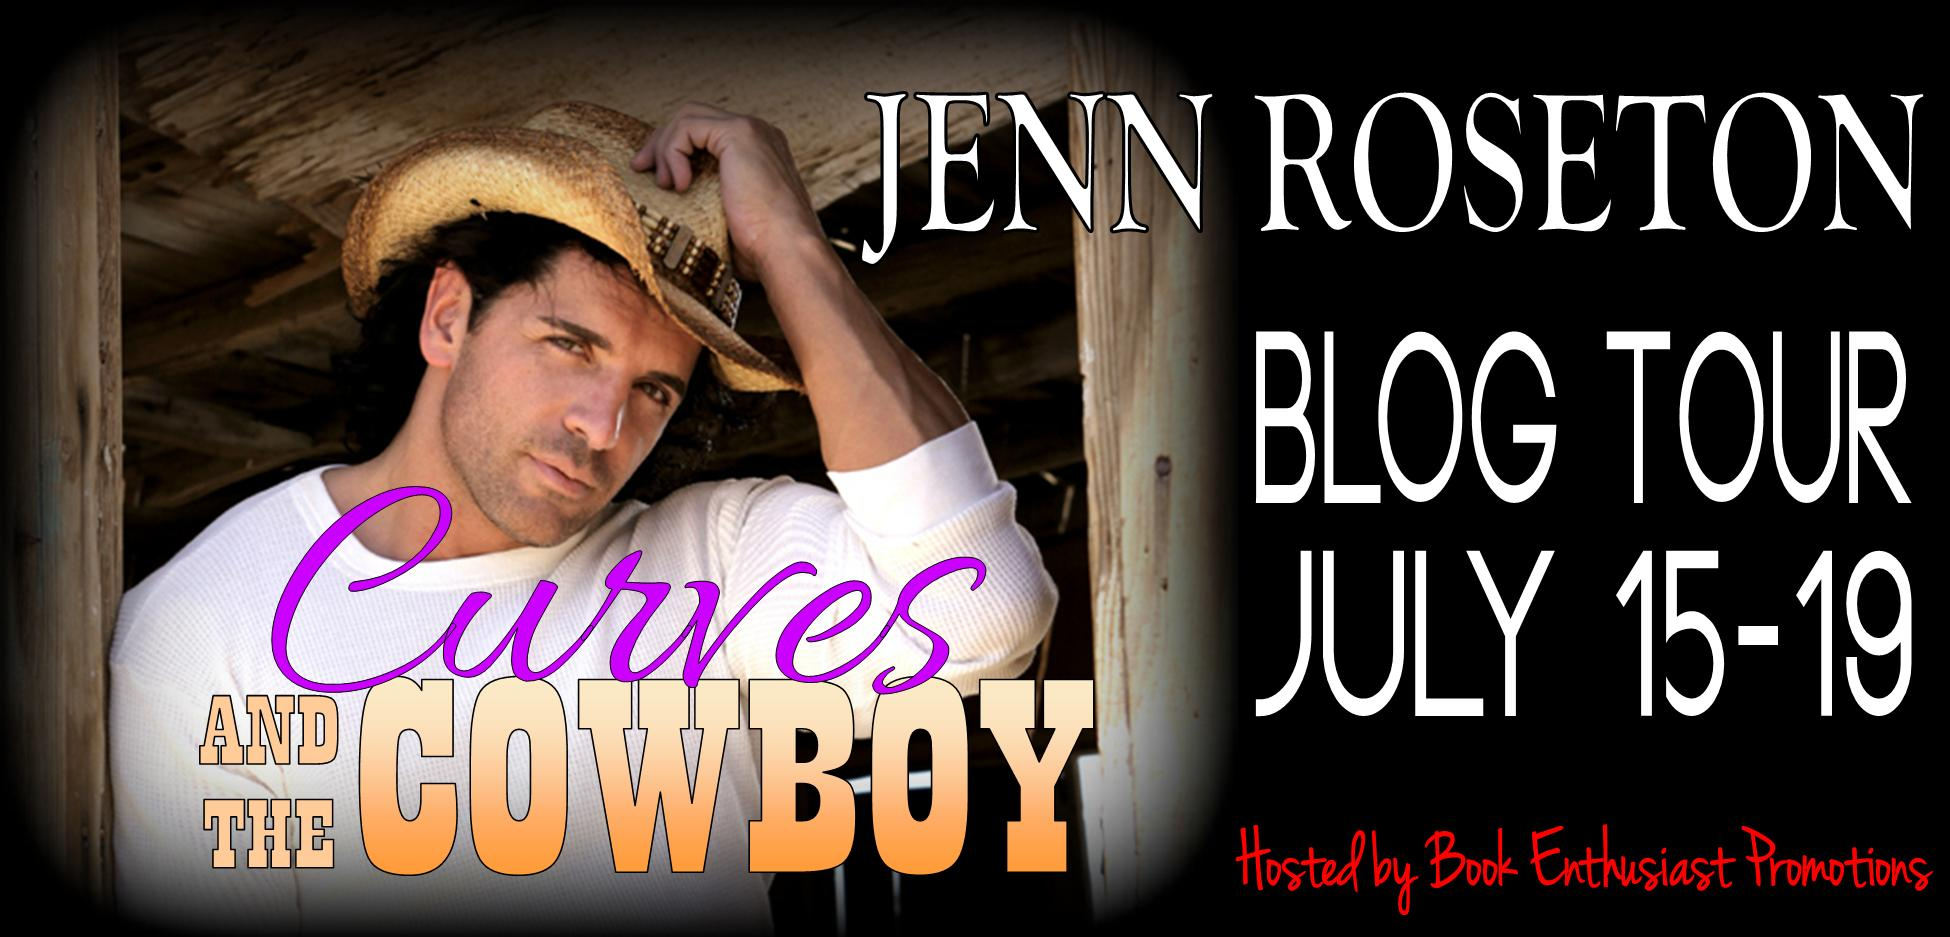 s and the Cowboy blog tour